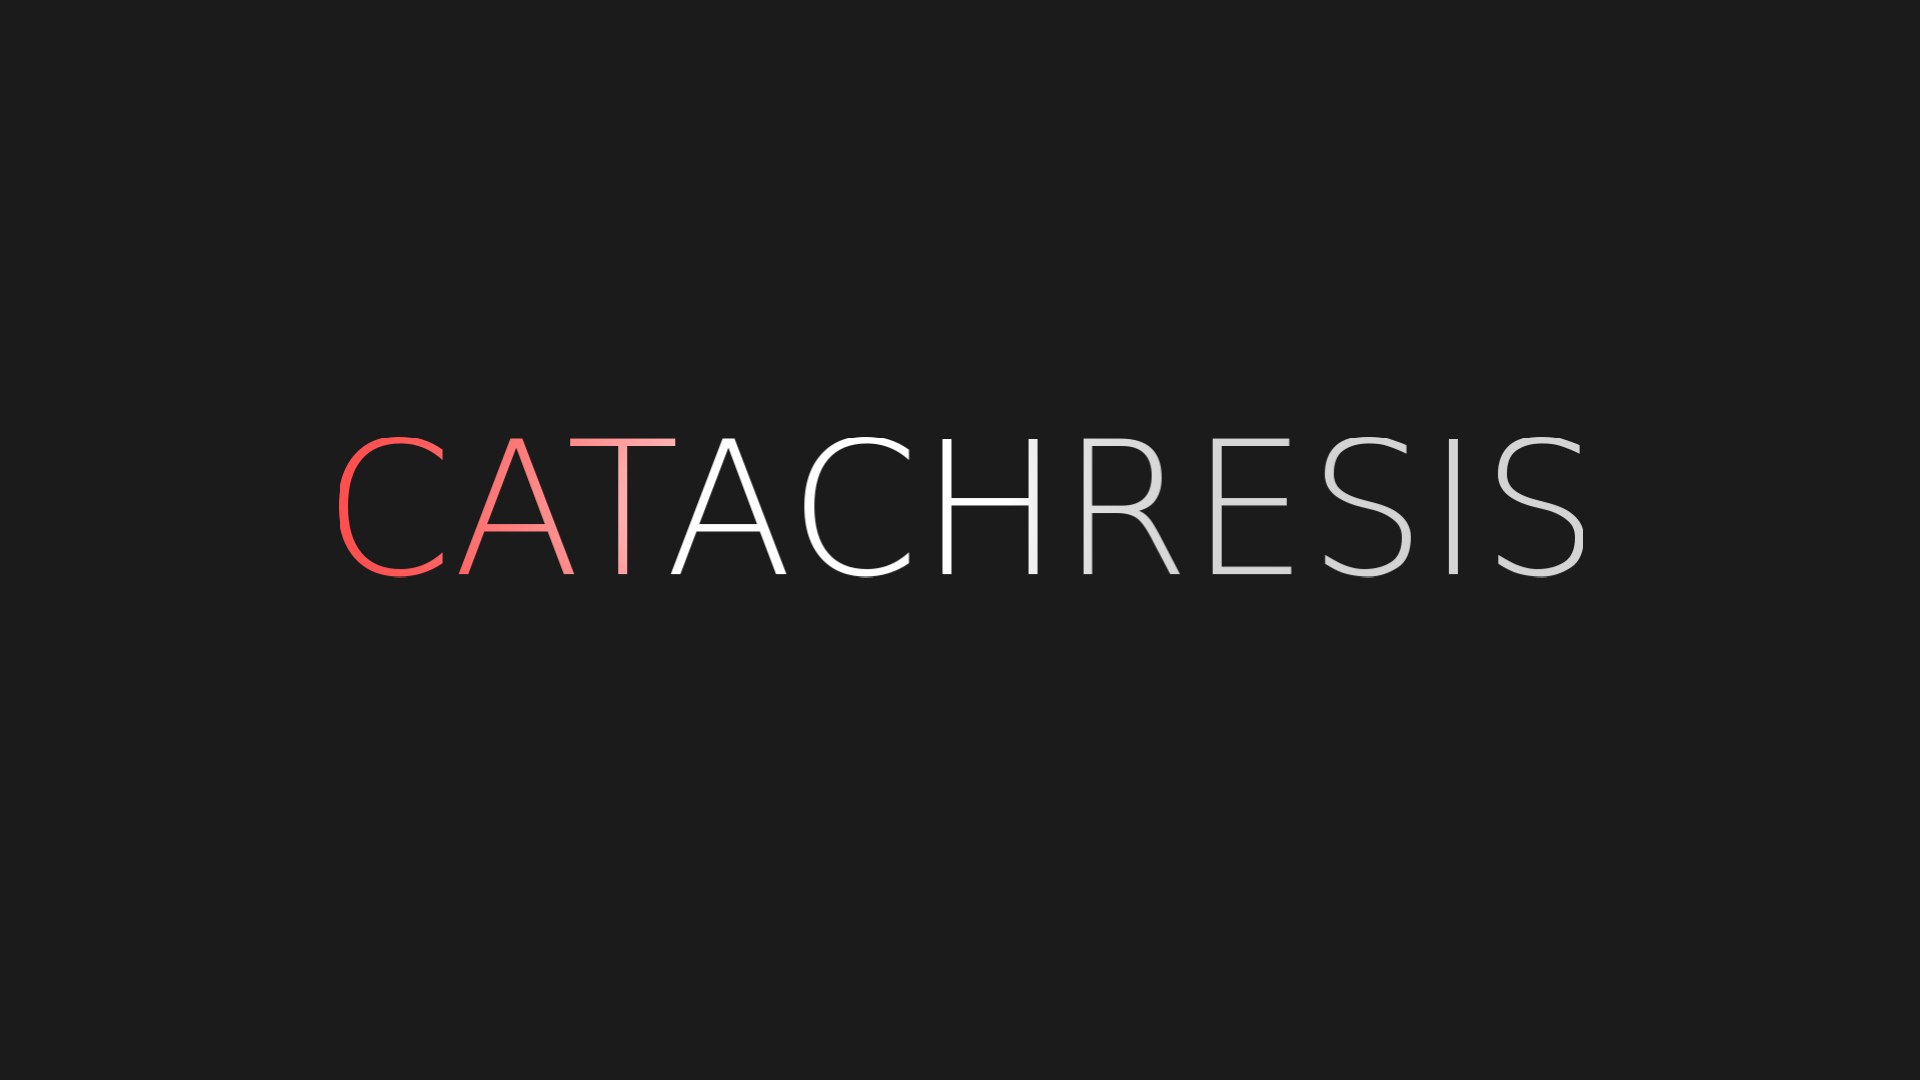 Catachresis